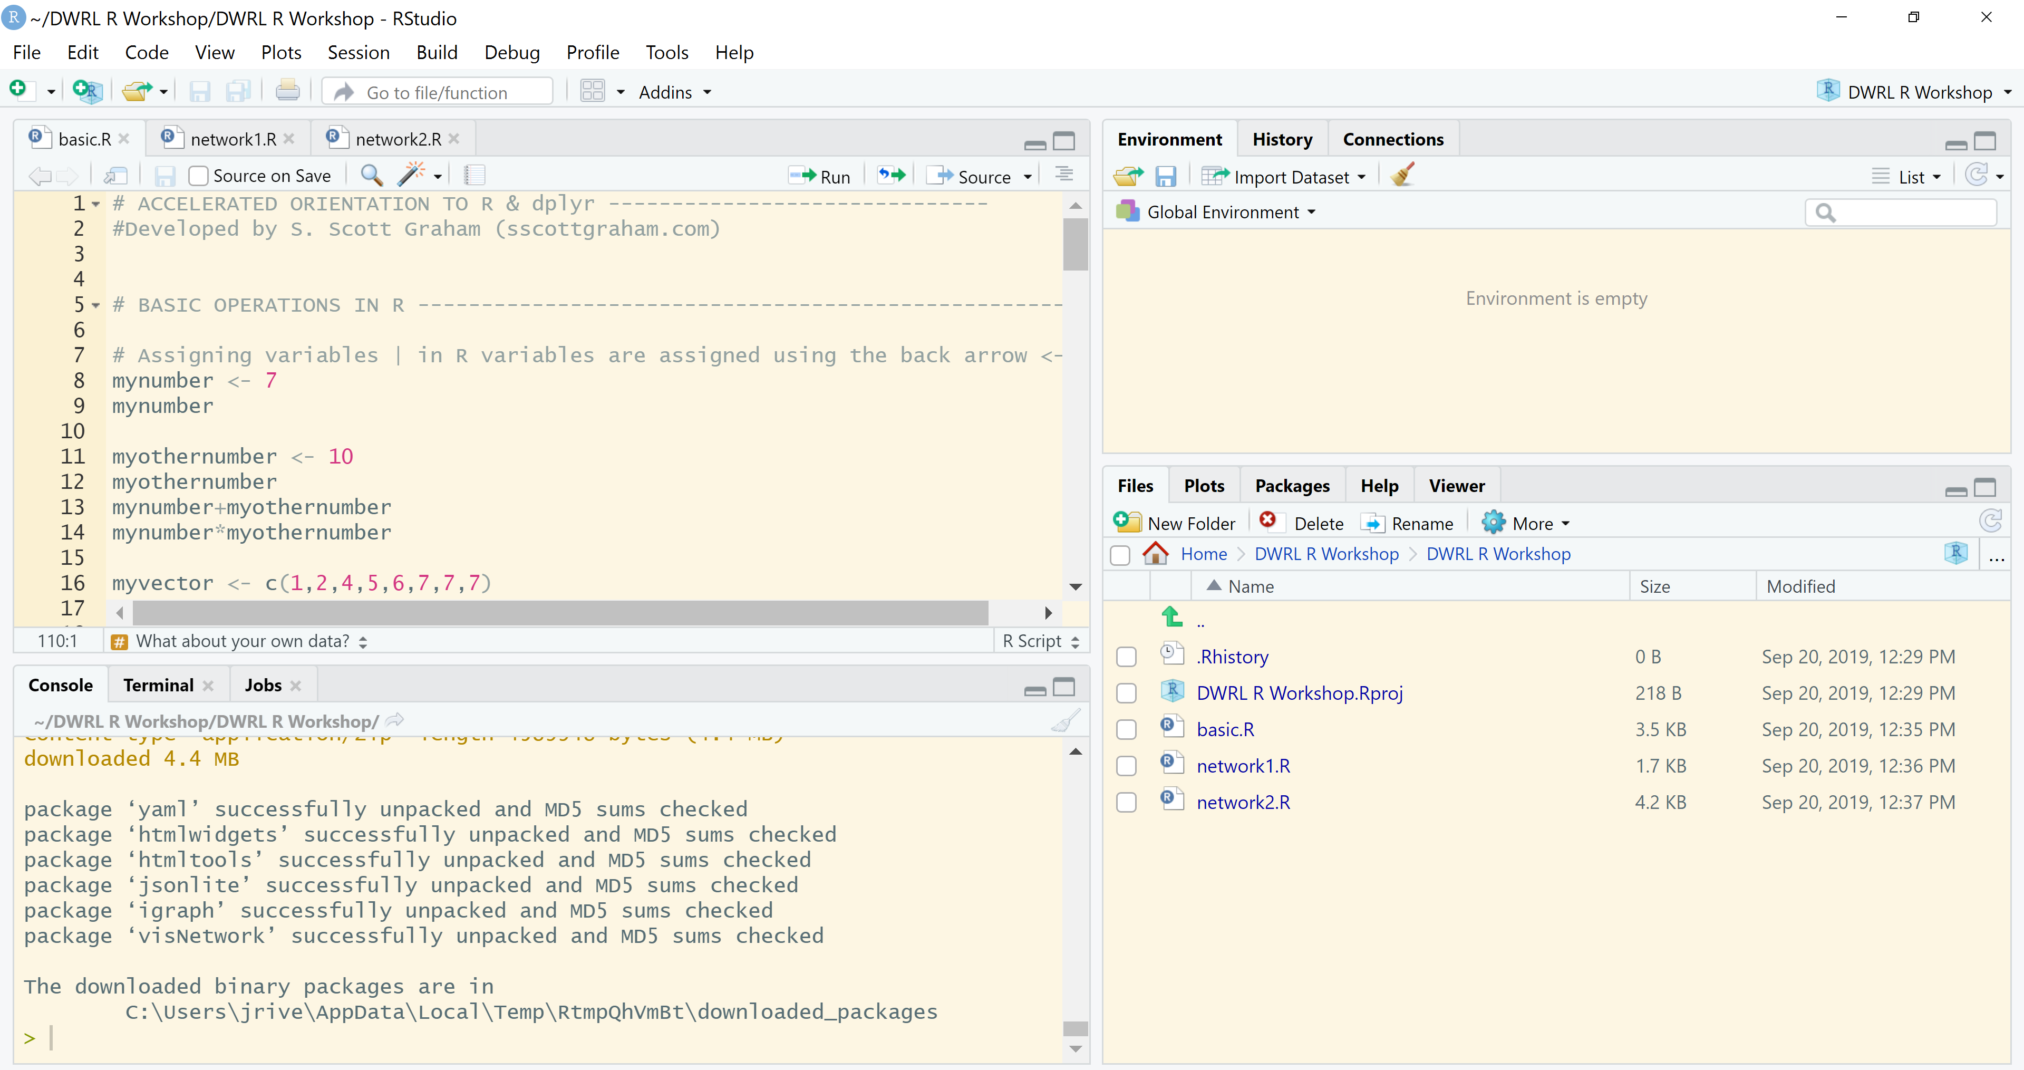 Screenshot of an RStudio pane. Code can be seen within the source and console. The environment pane is empty and there are files in the files/plots/packages/help pane.